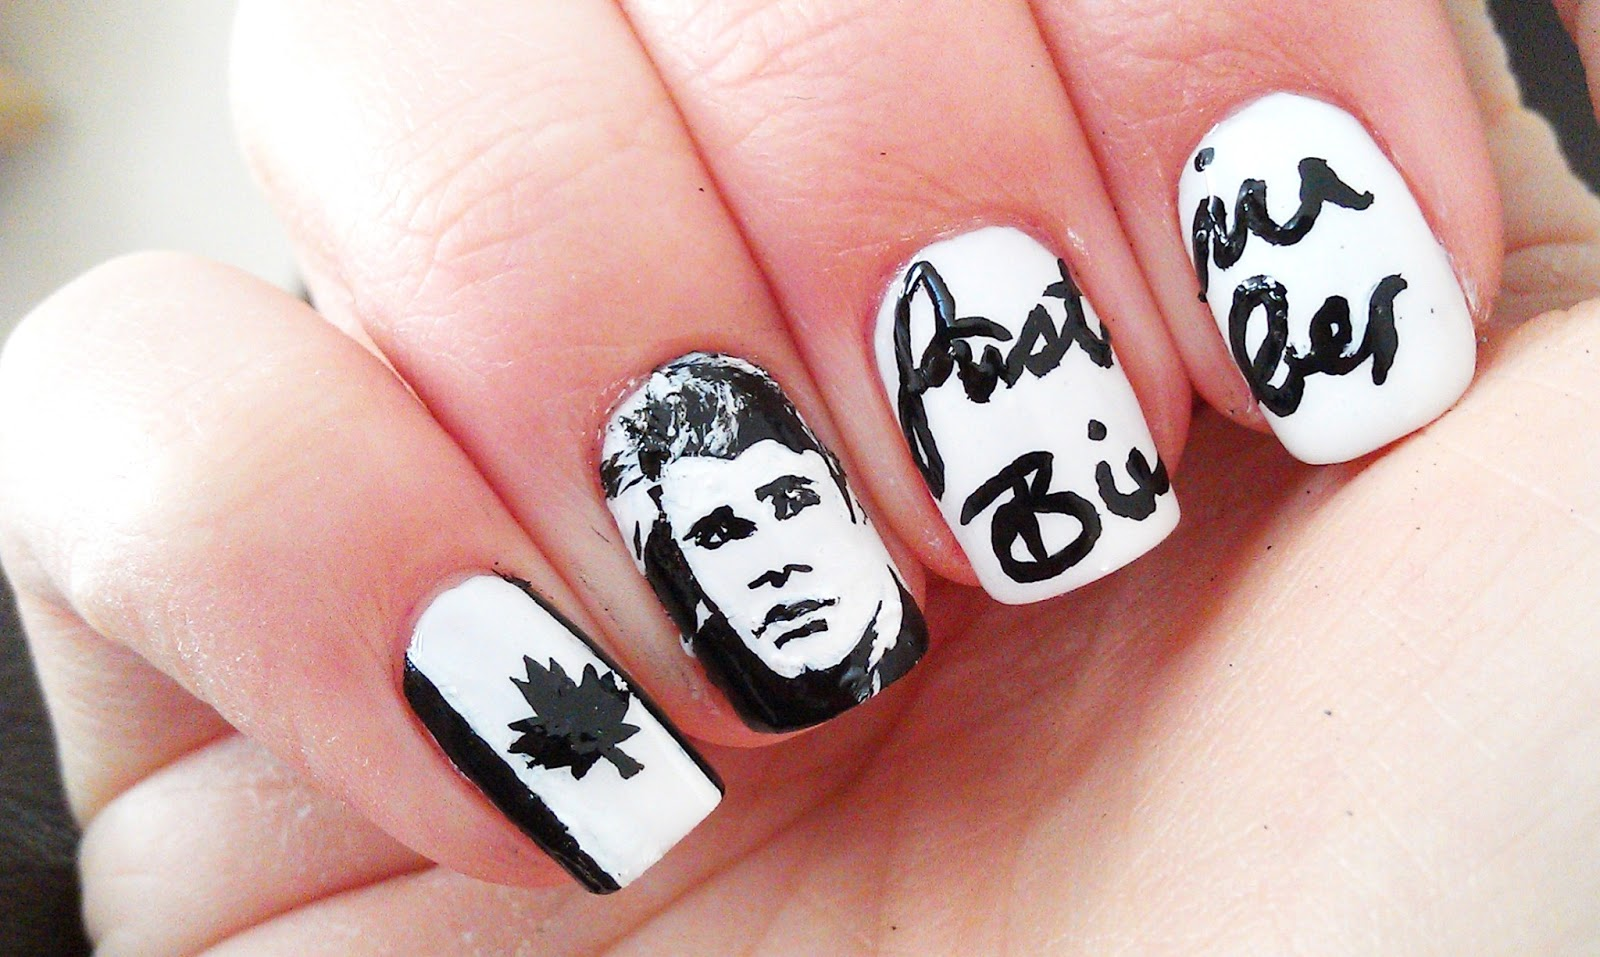 Justin Bieber Journals Nails by Me on 3/5/14   My Art - Nails ...